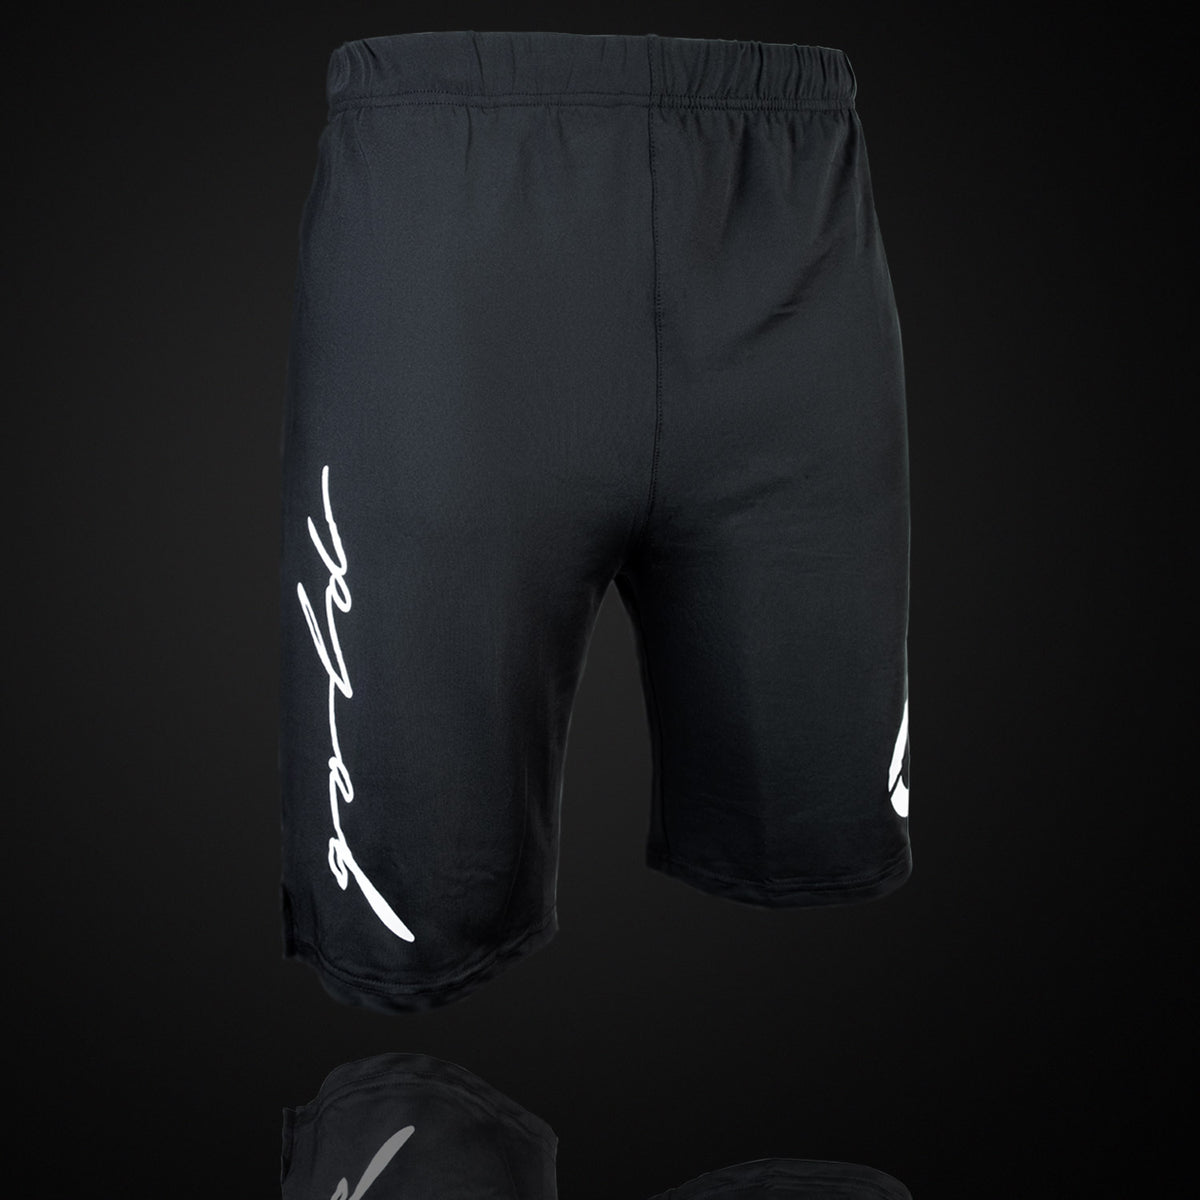 Fight Shorts